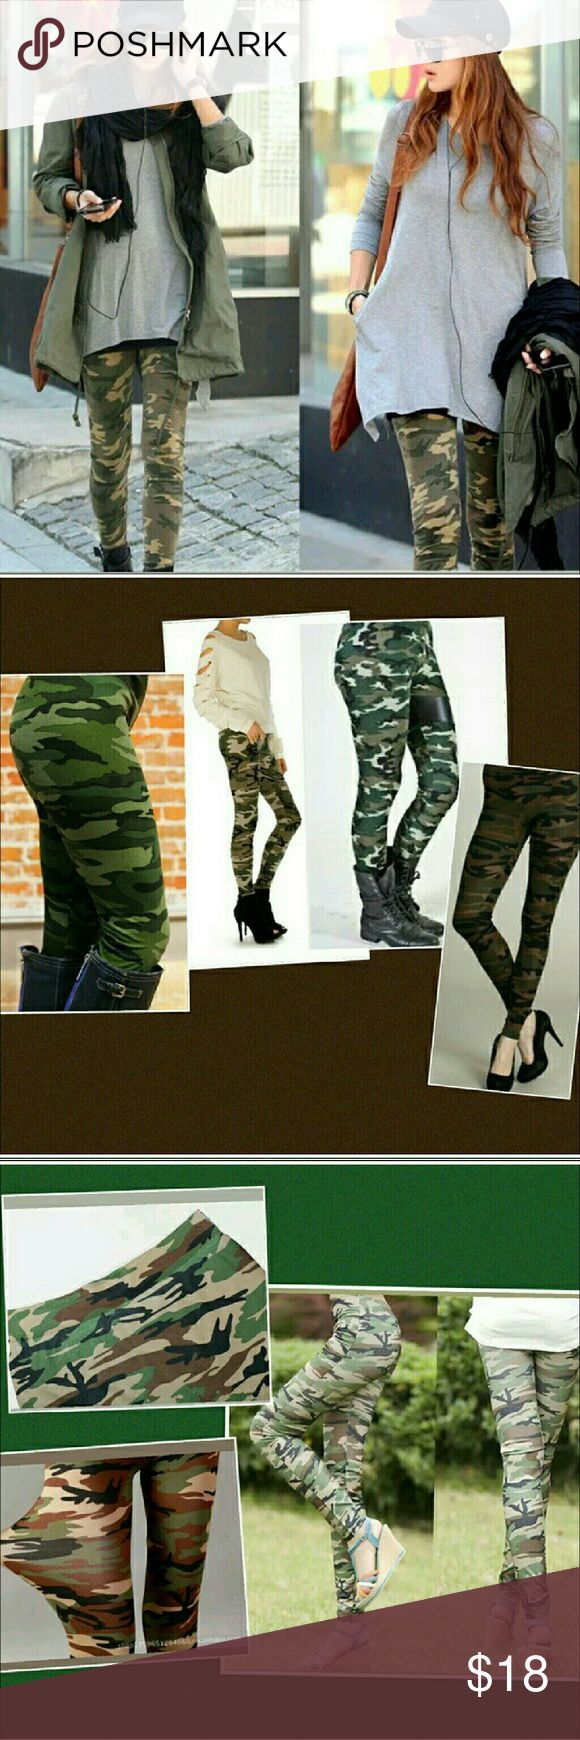 Camo Leggings Stretchy Skinny Camouflage Pants Camo leggings,  still new in the package. Stretchy to fit most sizes.   Smoke free home. I will gladly bundle items to give you a discount (the more you buy, the cheaper I can let everything go!). Many items can be added on for only $1.  MAKE AN OFFER! Pants Leggings